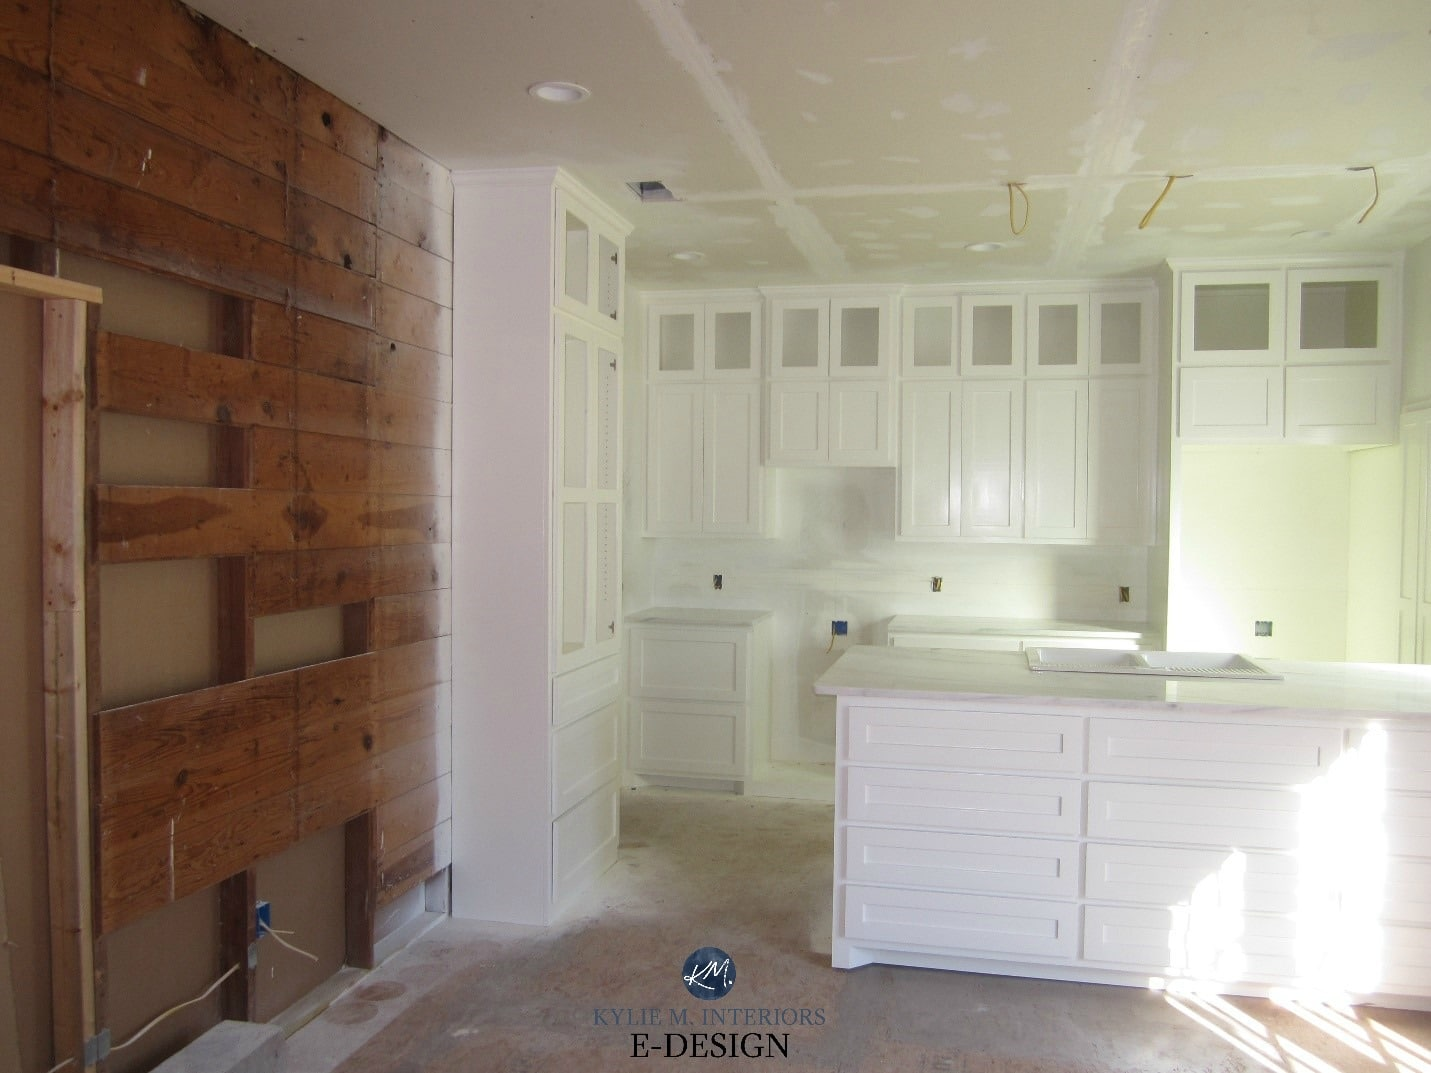 Best Benjamin Moore Paint For Kitchen Cabinets.Best Benjamin Moore White Paint Colour For Kitchen Cabinets